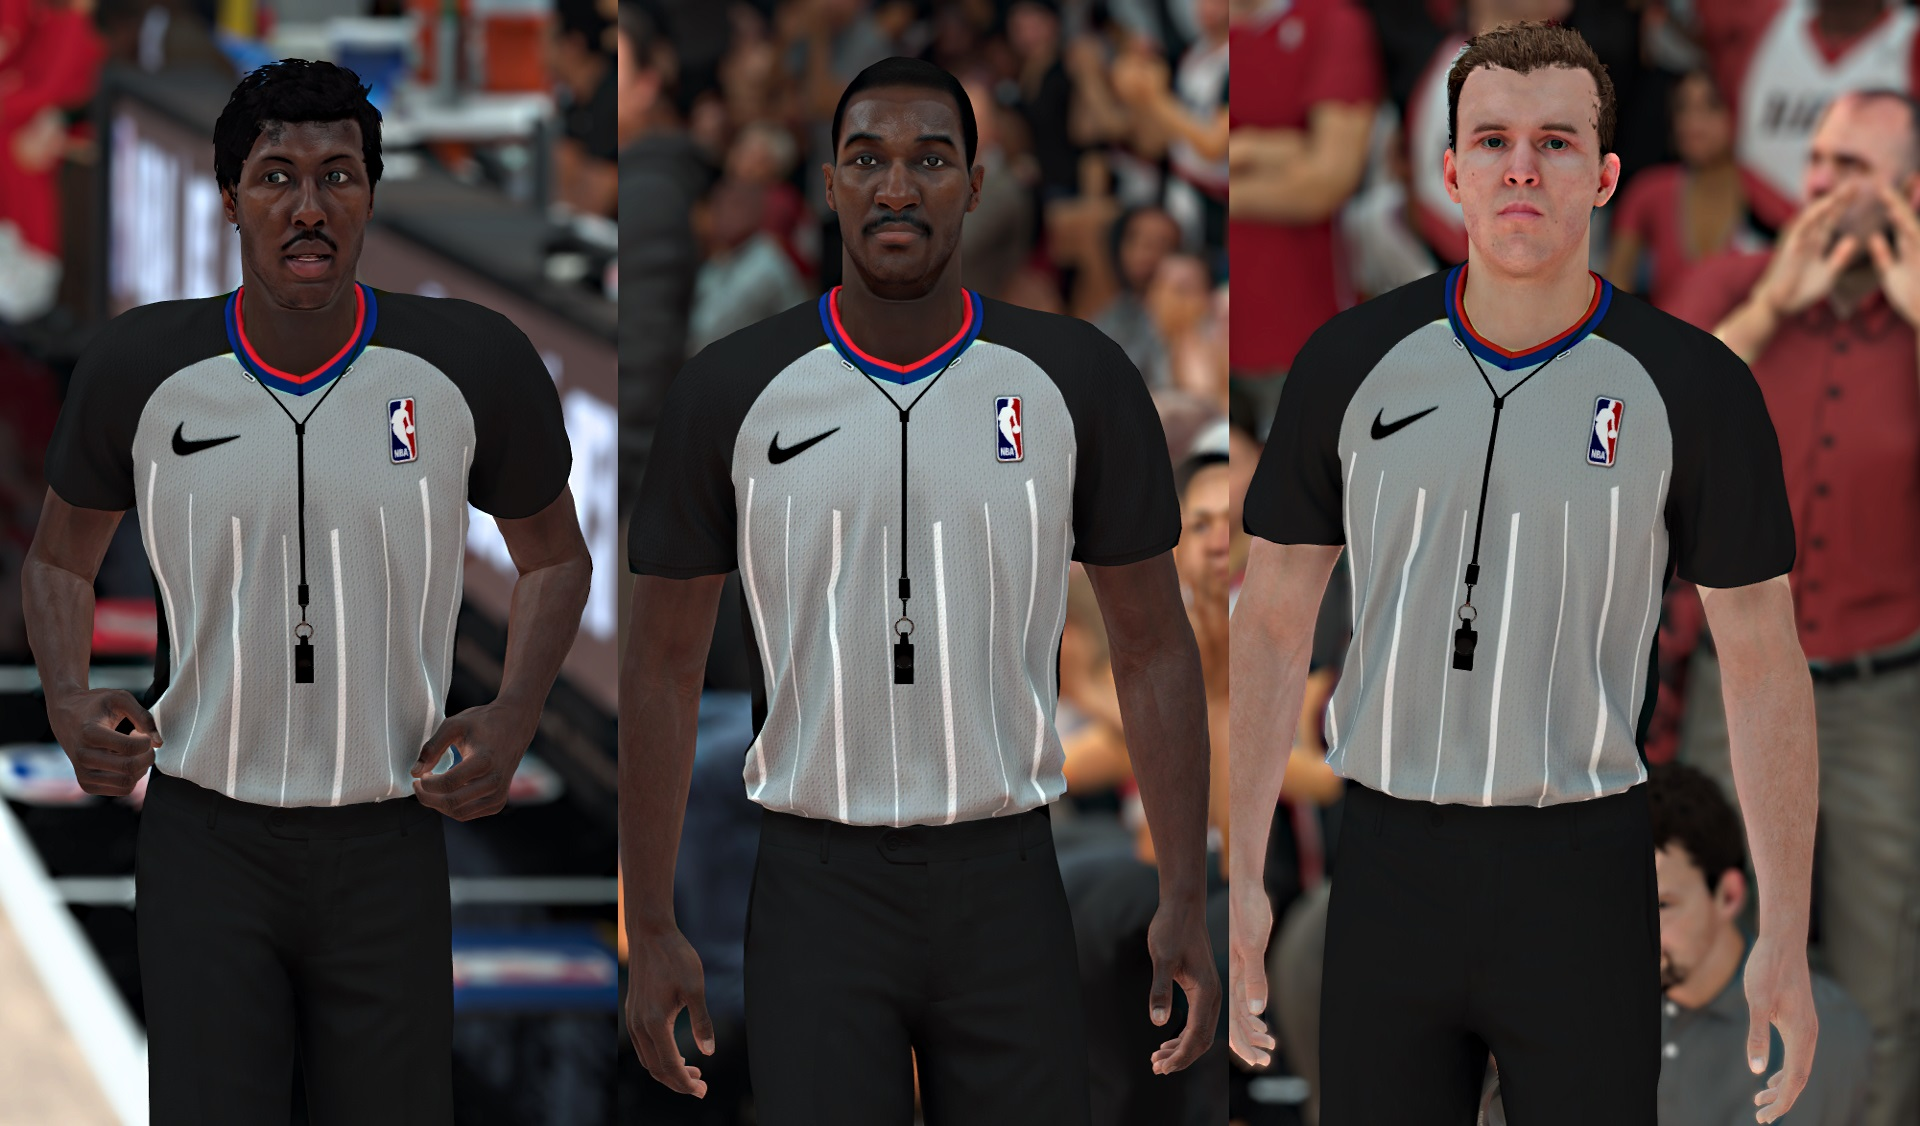 New Referees